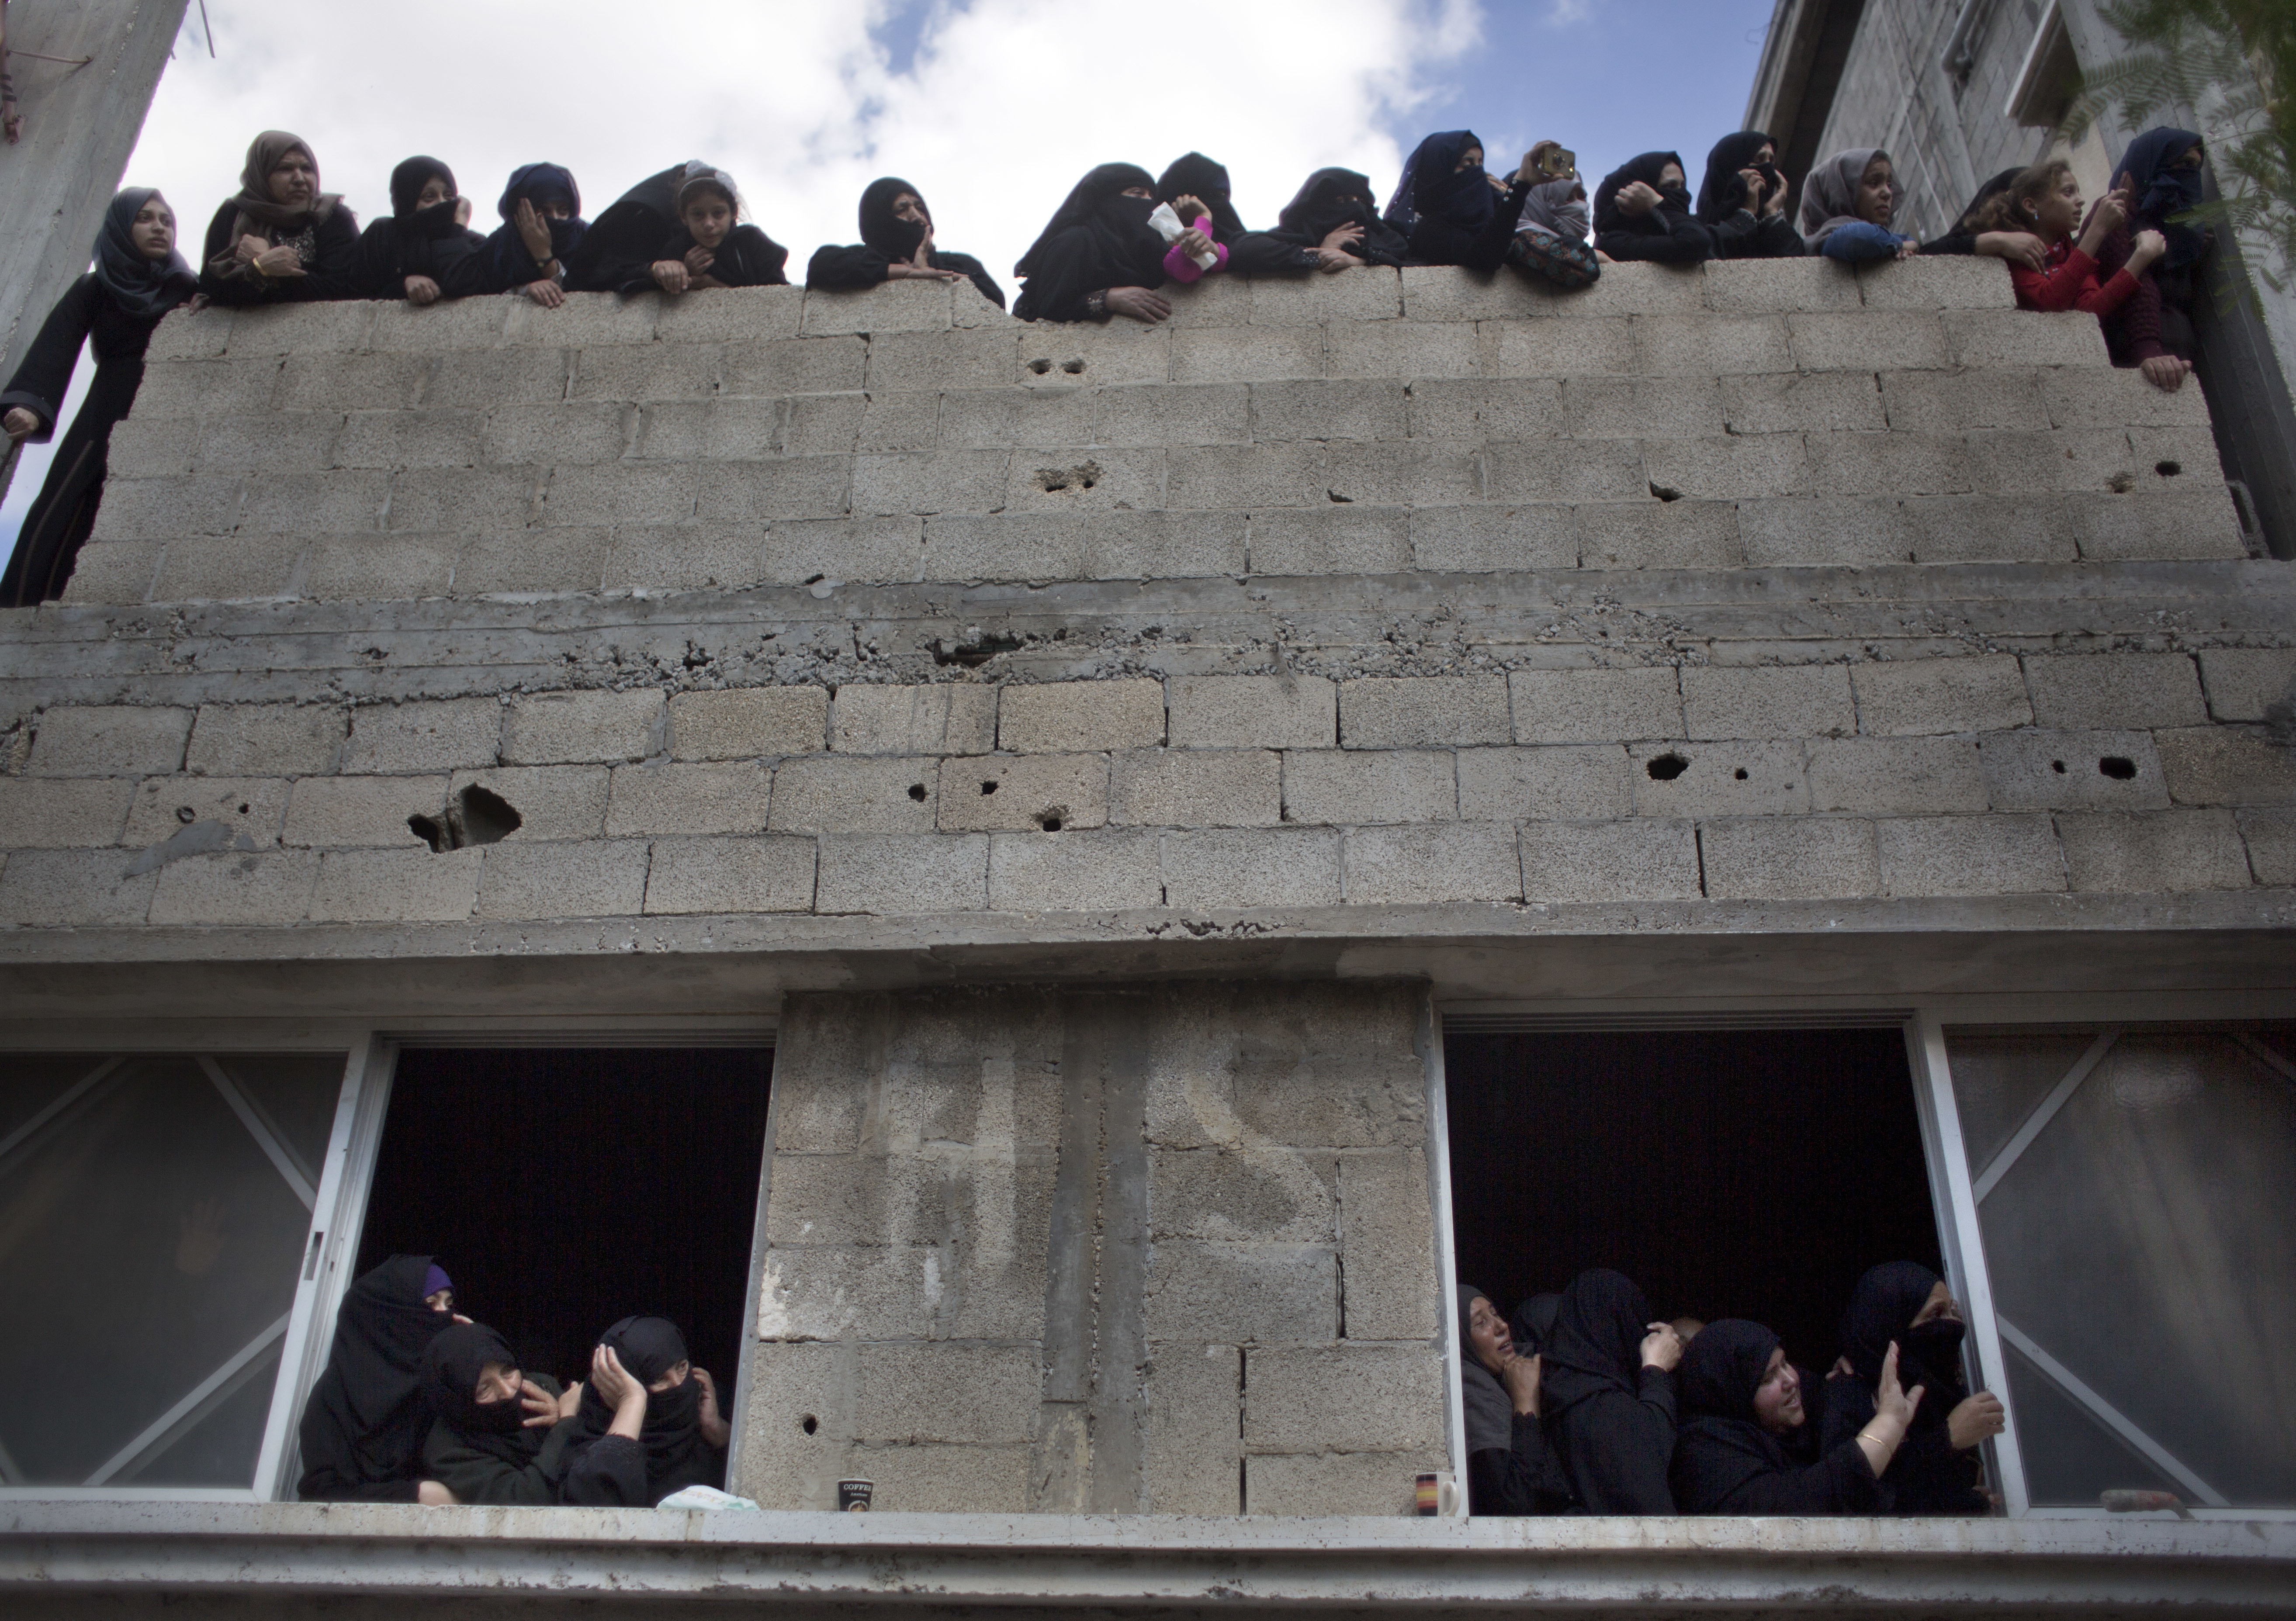 Relatives of Ahmed Abu Lebdeh, 22, who was killed by Israeli troops during Friday's protest at the Gaza Strip's border with Israel, look at mourners carry his body out of the family home during his funeral in town of Khan Younis, southern Gaza Strip, Saturday, Oct. 27, 2018. (AP Photo/Khalil Hamra)